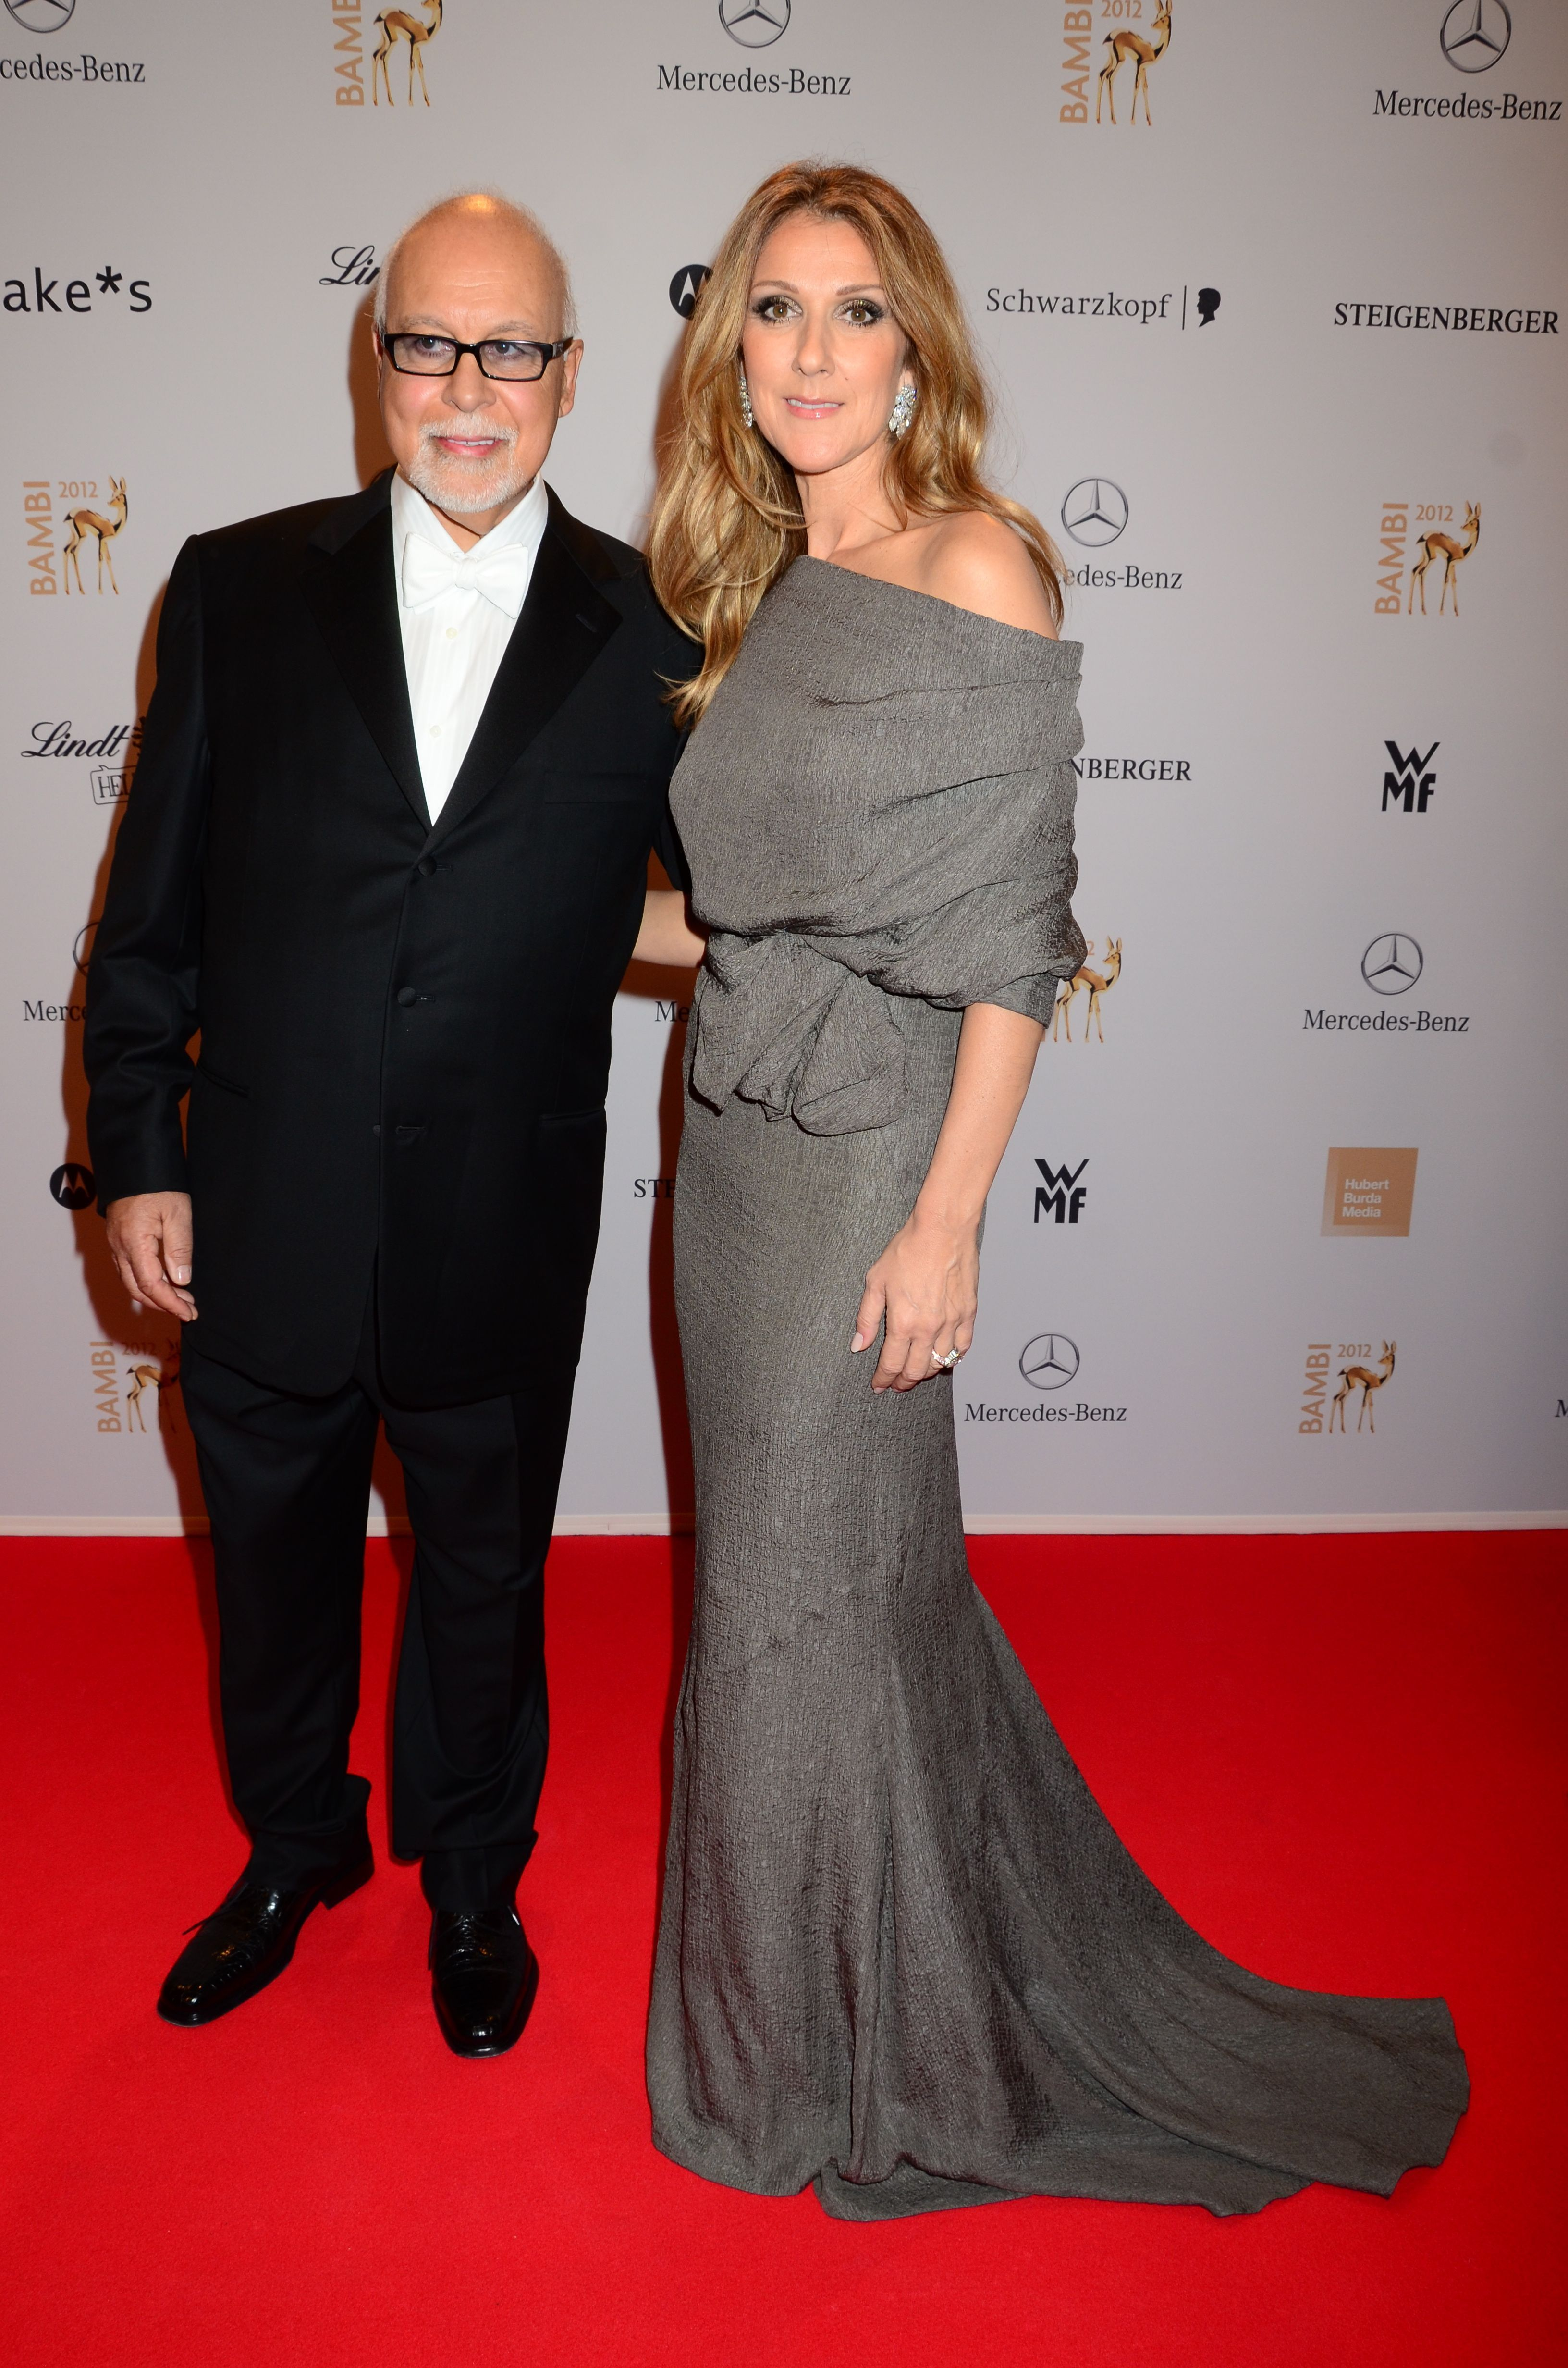 Rene Angelil and Celine Dion arrive at the Bambi Awards Gala at Congress Center in Dusseldorf, Germany, on Nov. 22, 2012.